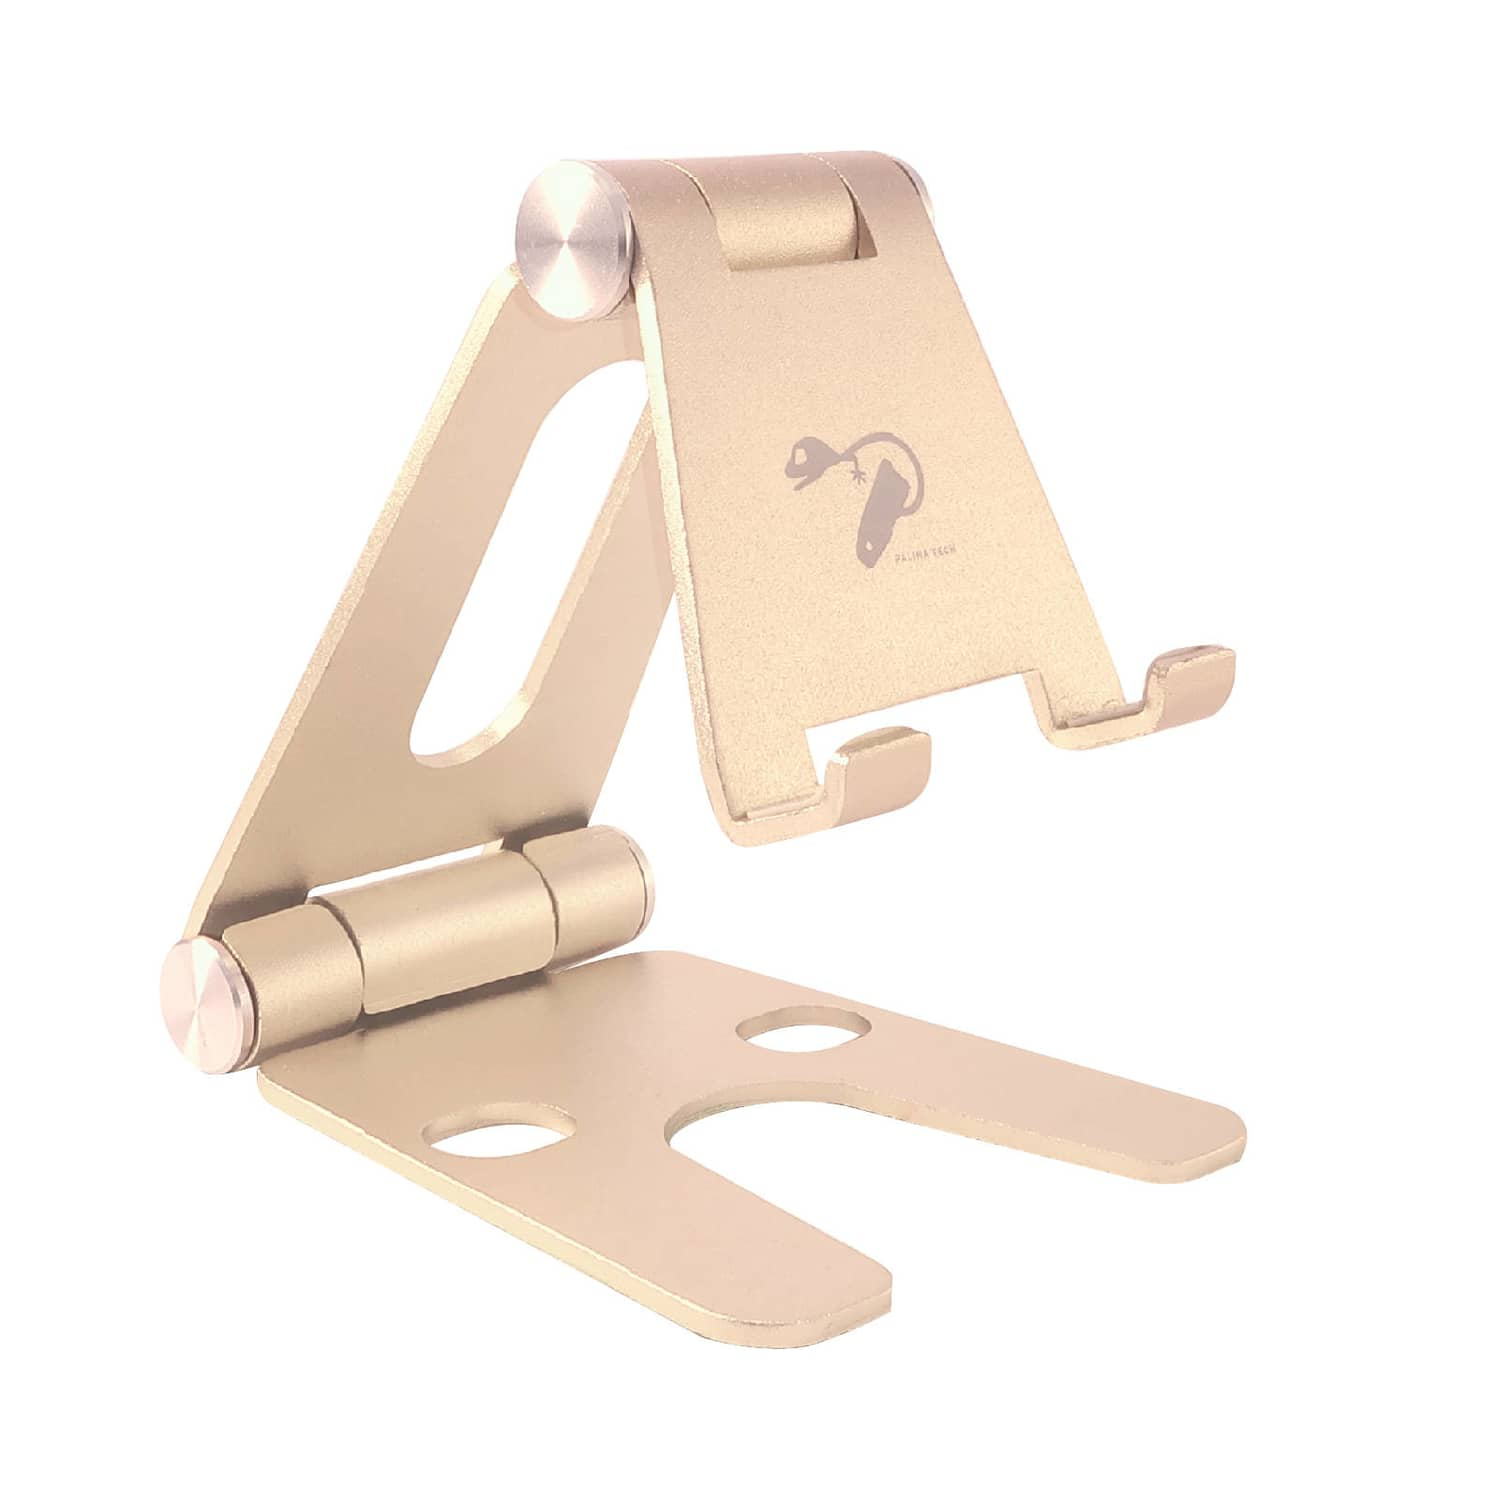 Alu holder premium gold 1